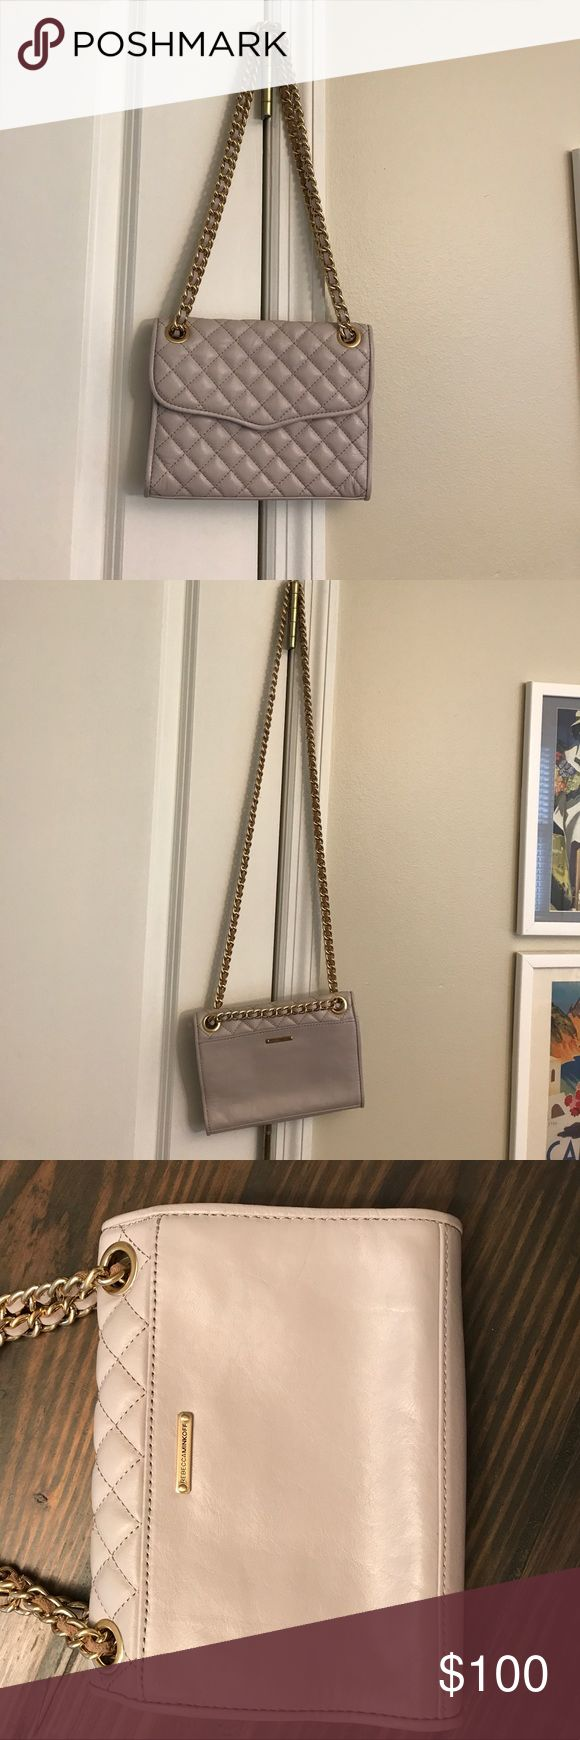 Gray Taupe quilted leather Rebecca Minkoff purse Grey taupe convertible authentic Rebecca Minkoff purse. Gold chain can be long for crossbody or short for shoulder bag. Lightly used. No visible signs of wear and tear. 1 interior pocket. Rebecca Minkoff Bags Shoulder Bags